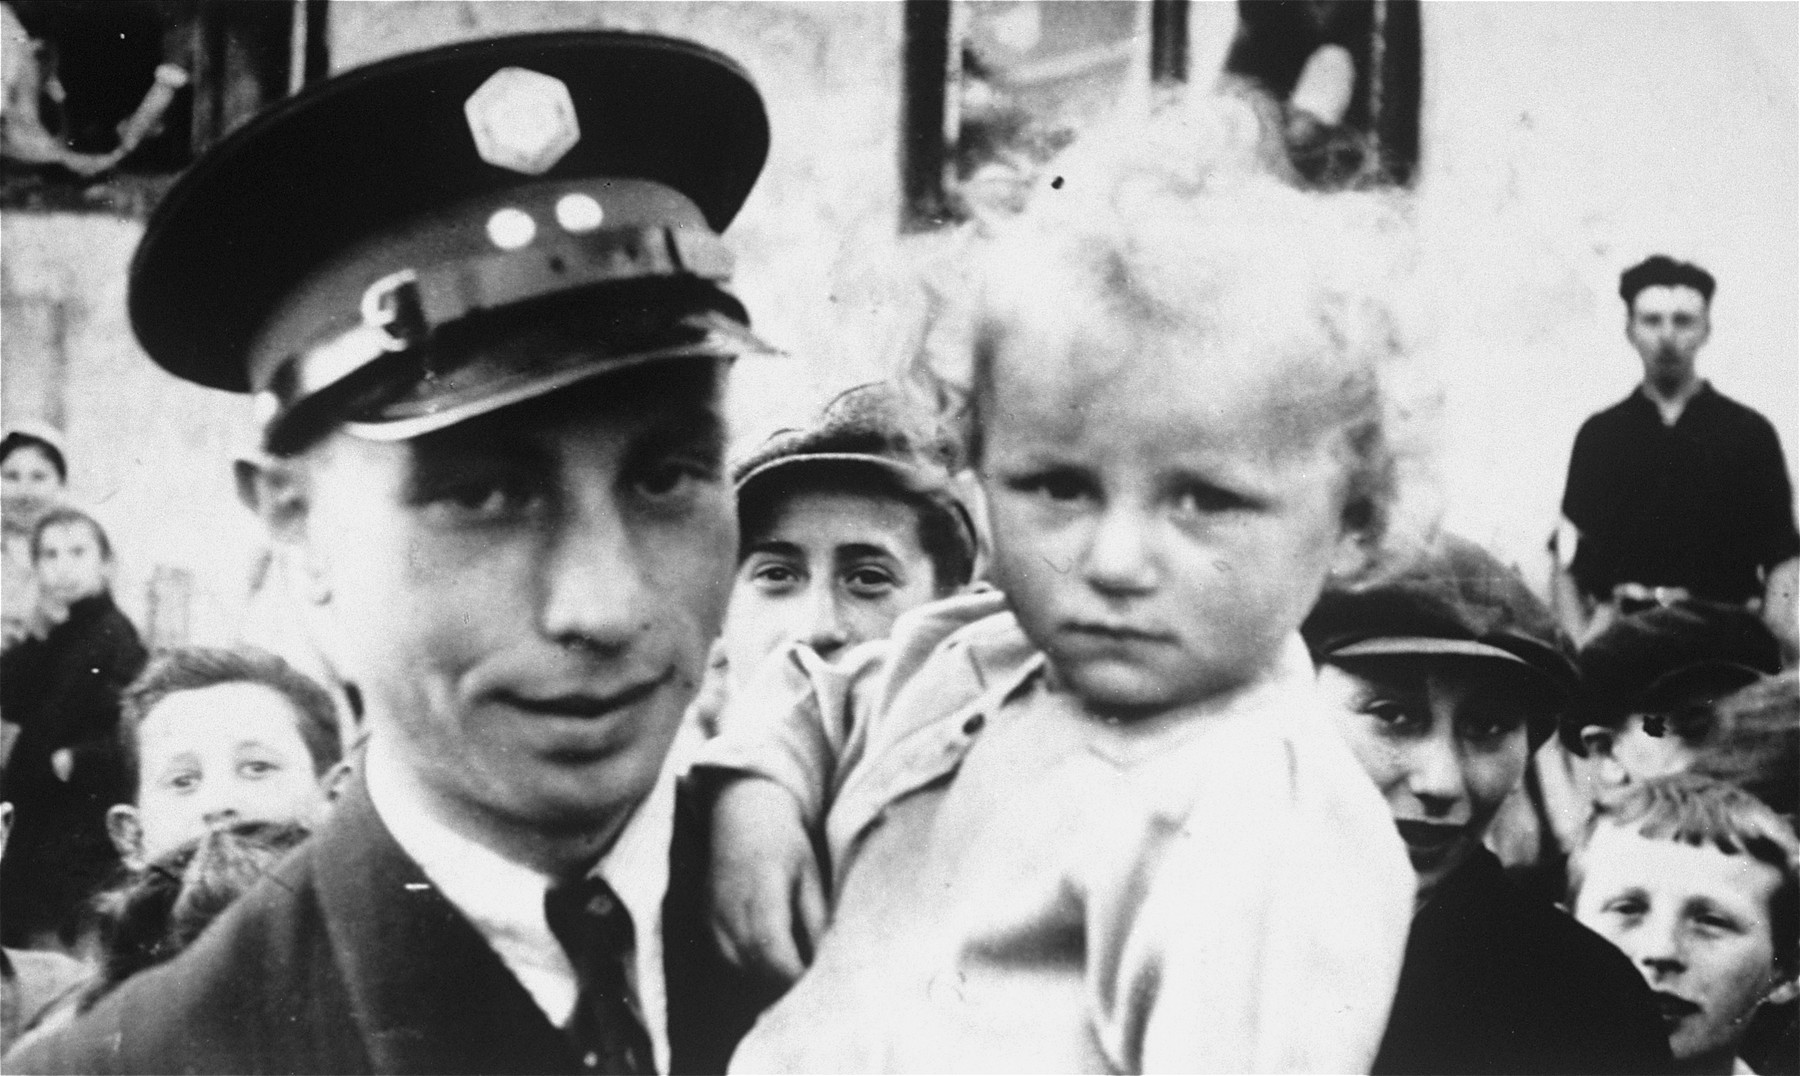 A Jewish policeman poses with his young cousin, Guta Tyrangiel, in the Minsk Mazowiecki ghetto.